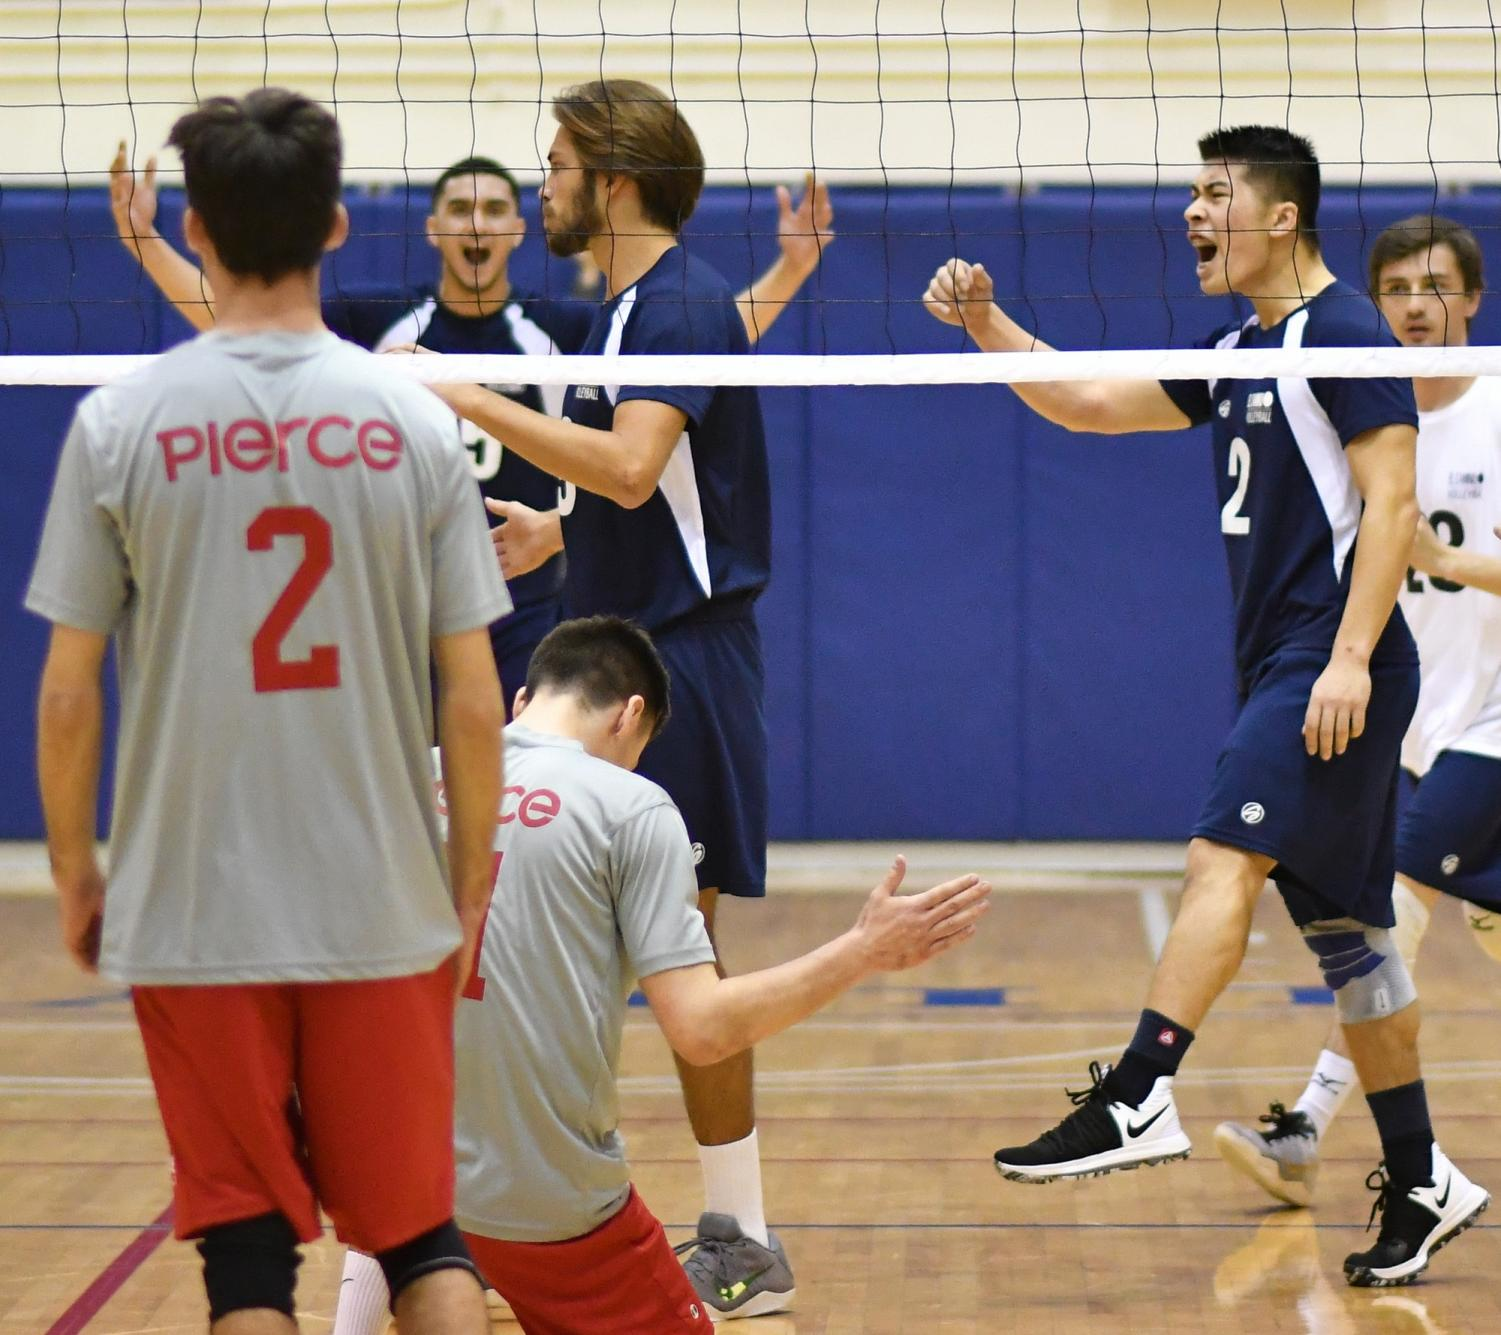 Los Angeles Pierce College defeats mens' volleyball team at home game